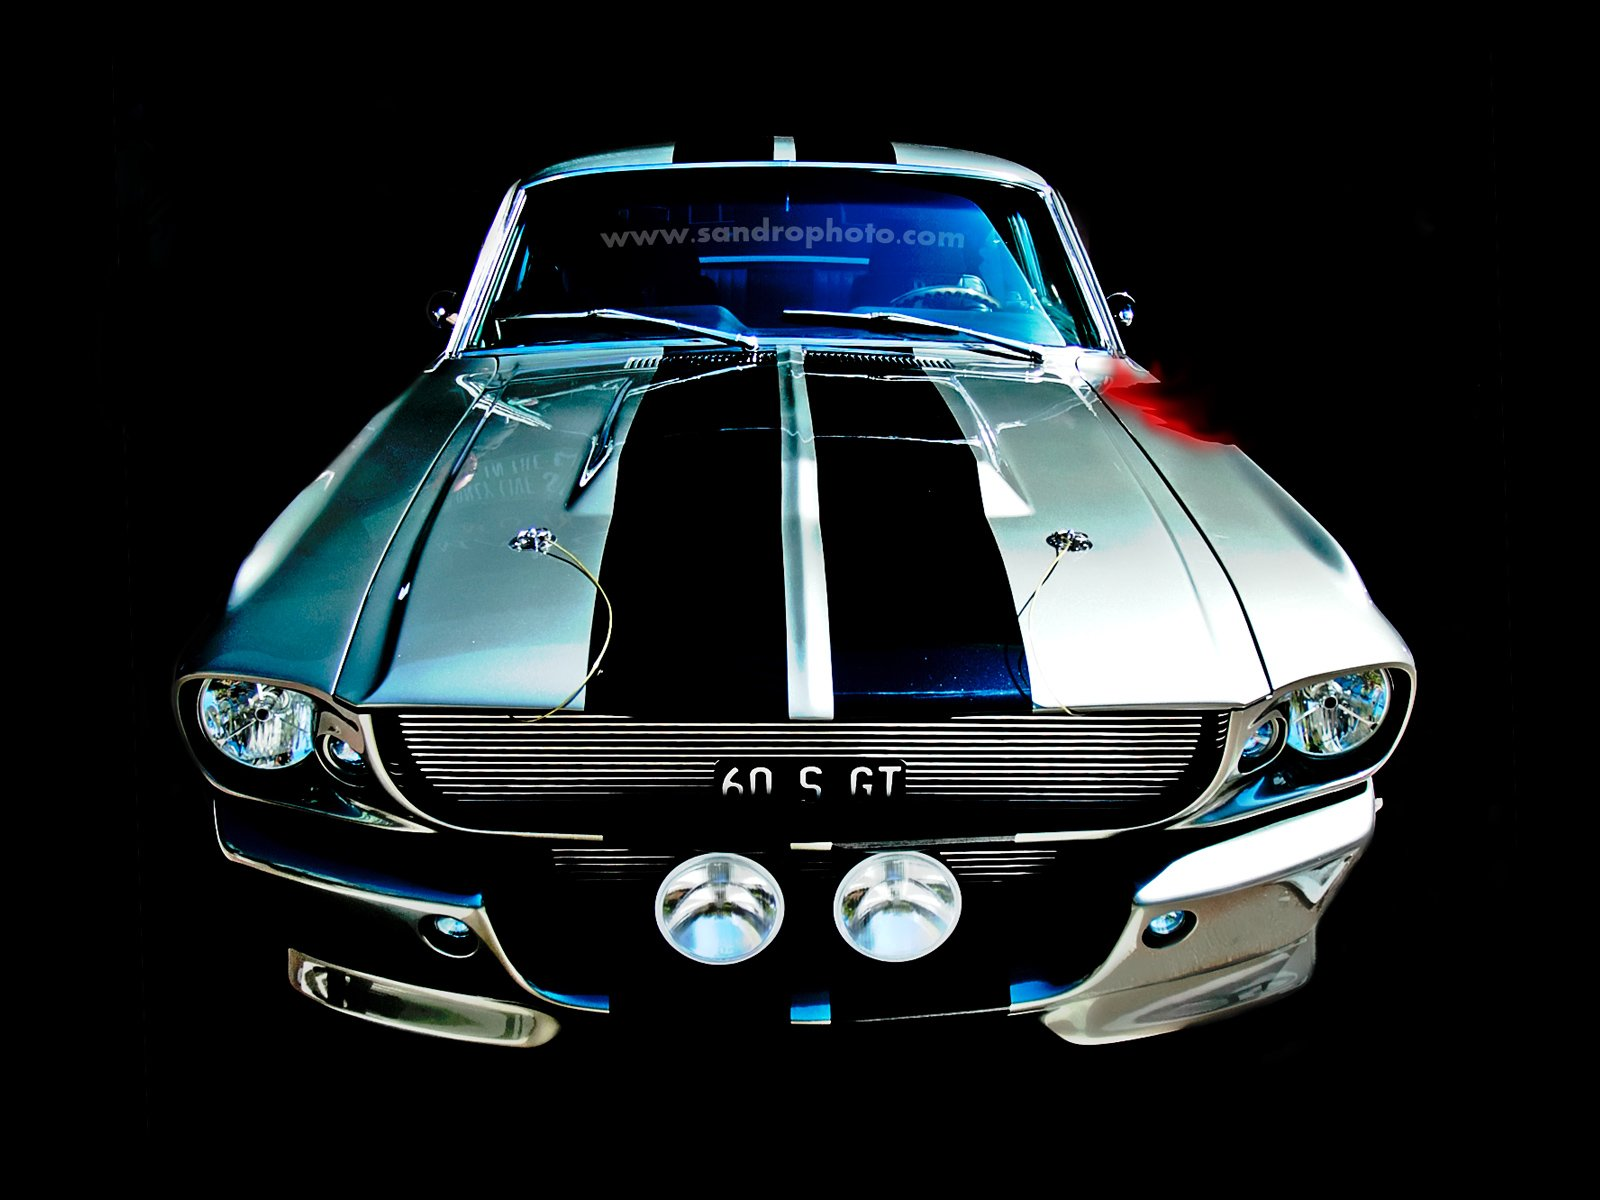 New Muscle Car Wallpaper 2012 Its My Car Club On This Month